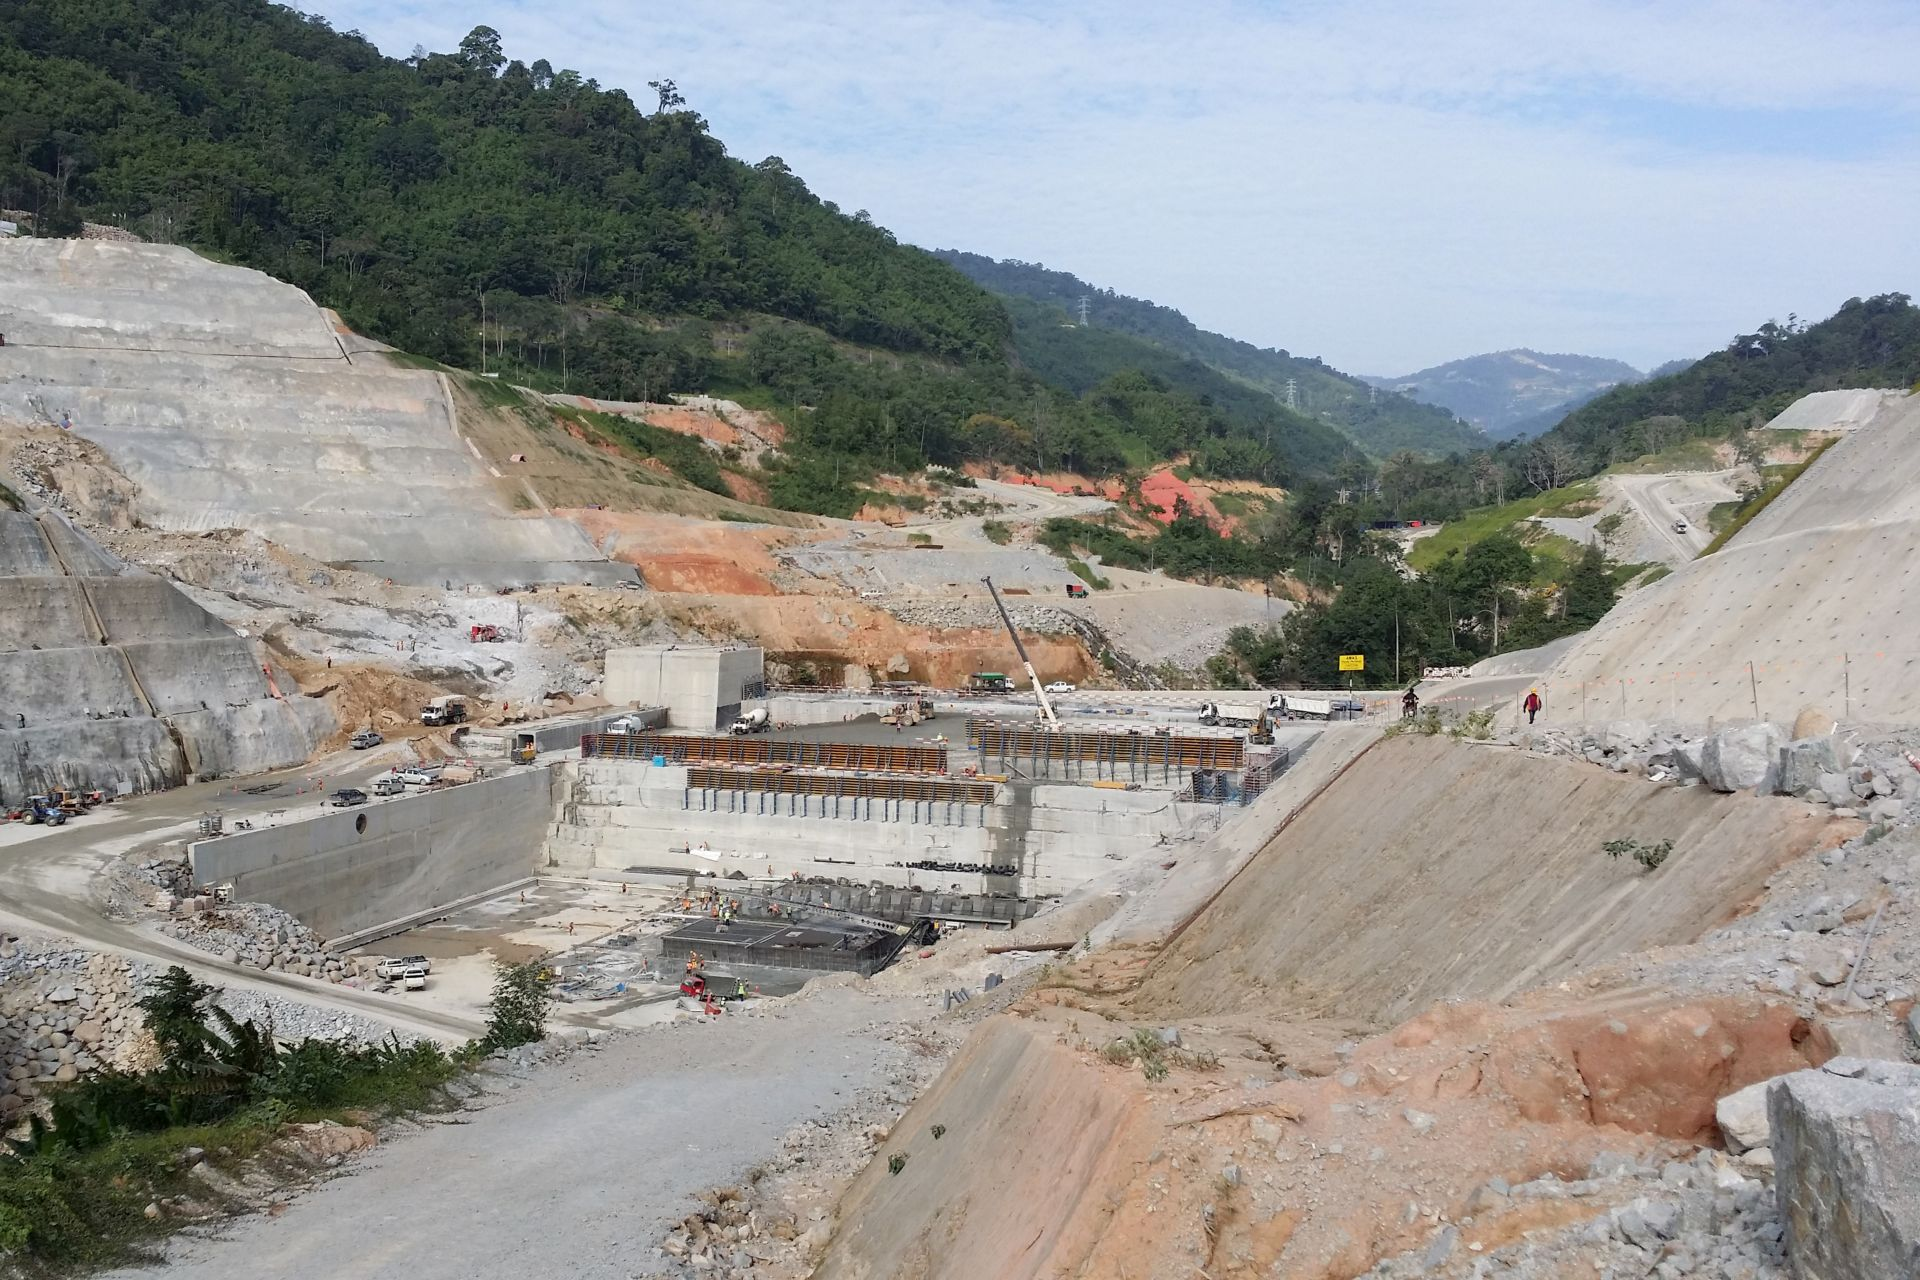 Application of Roller Compacted Concrete (RCC) at the Ulu Jelai Hydropower Dam in Malaysia